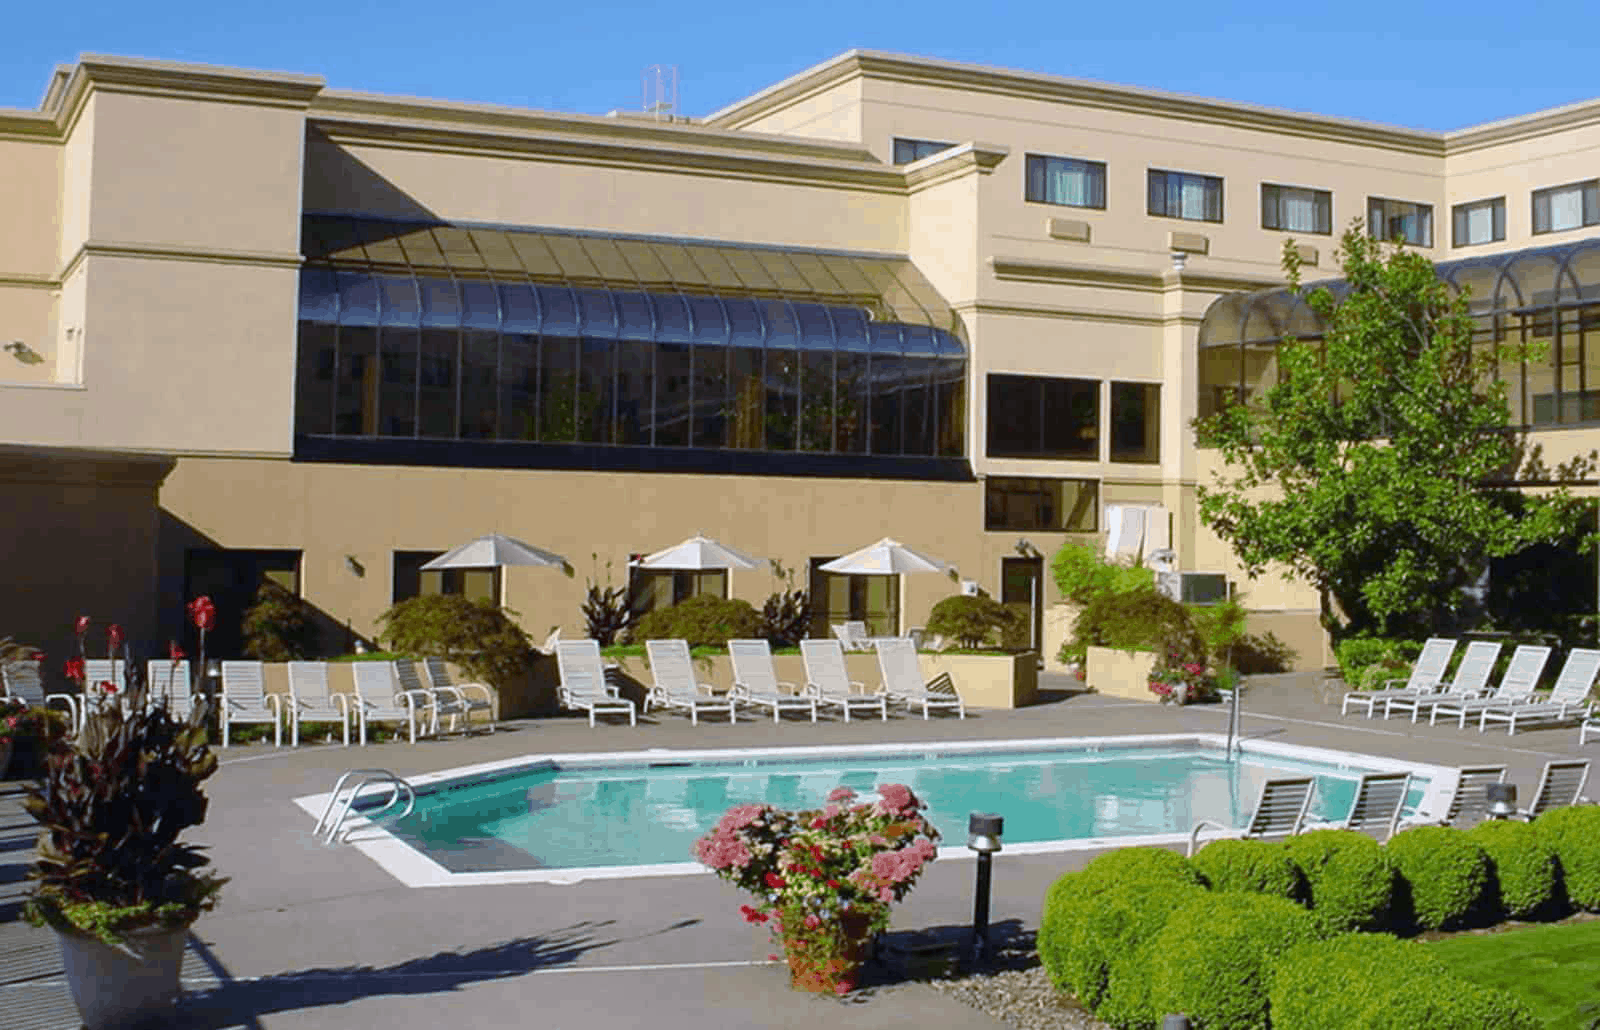 clackamas-hotels-clackamas-town-center.jpg